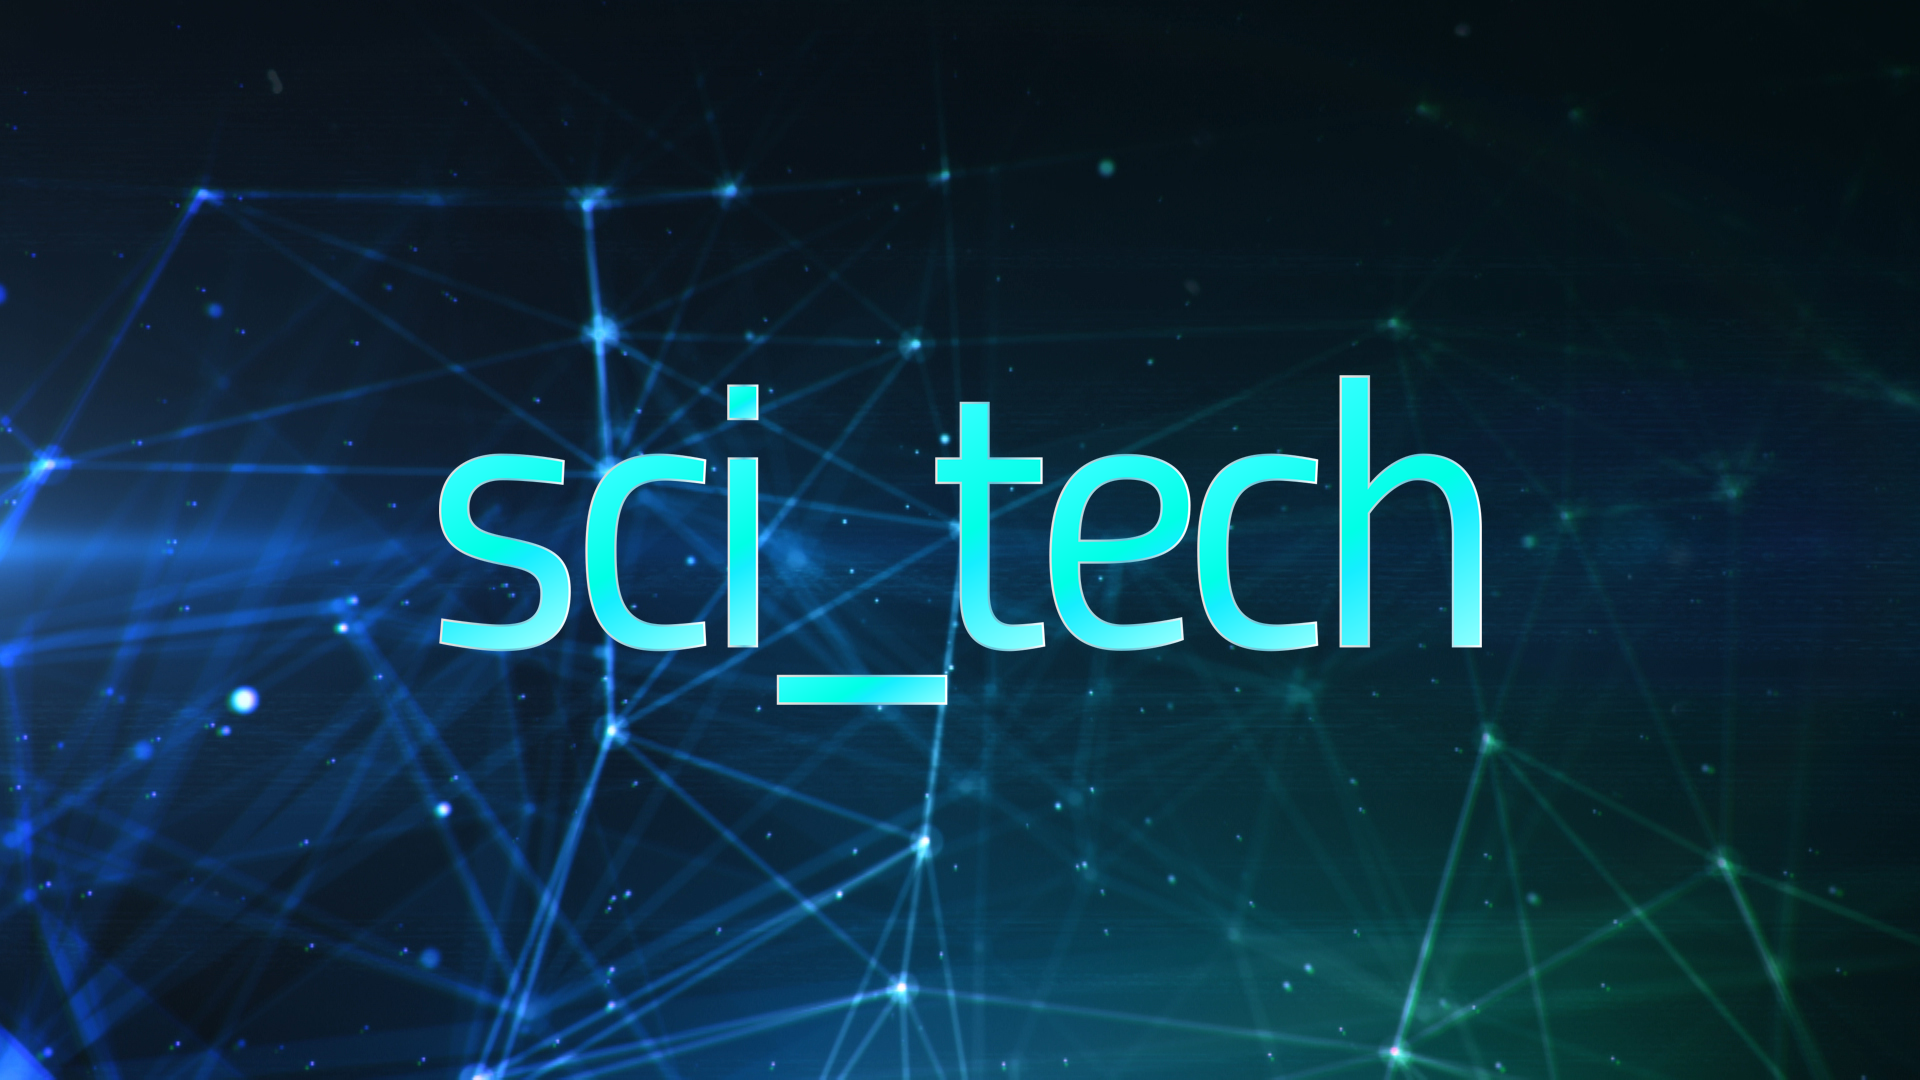 The latest developments in science and technology developments presented in an accessible format. ​Our Sci Tech team covers the major technology ​and innovation shows around the world, bringing you news and breaking trends from the frontiers of scientific endeavour as well as the latest gadgets and more.